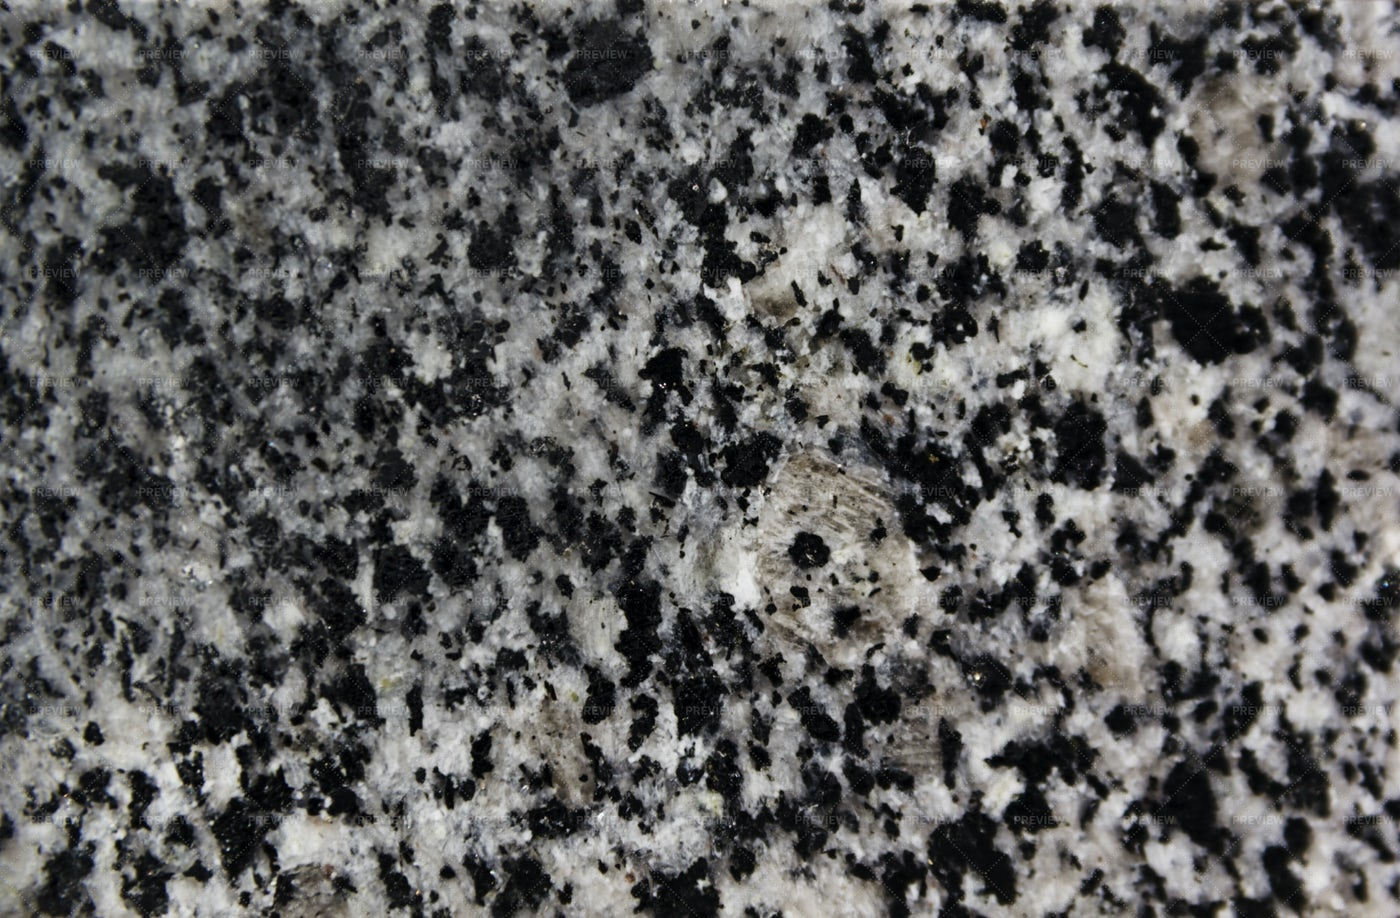 Black And White Marble Pattern: Stock Photos